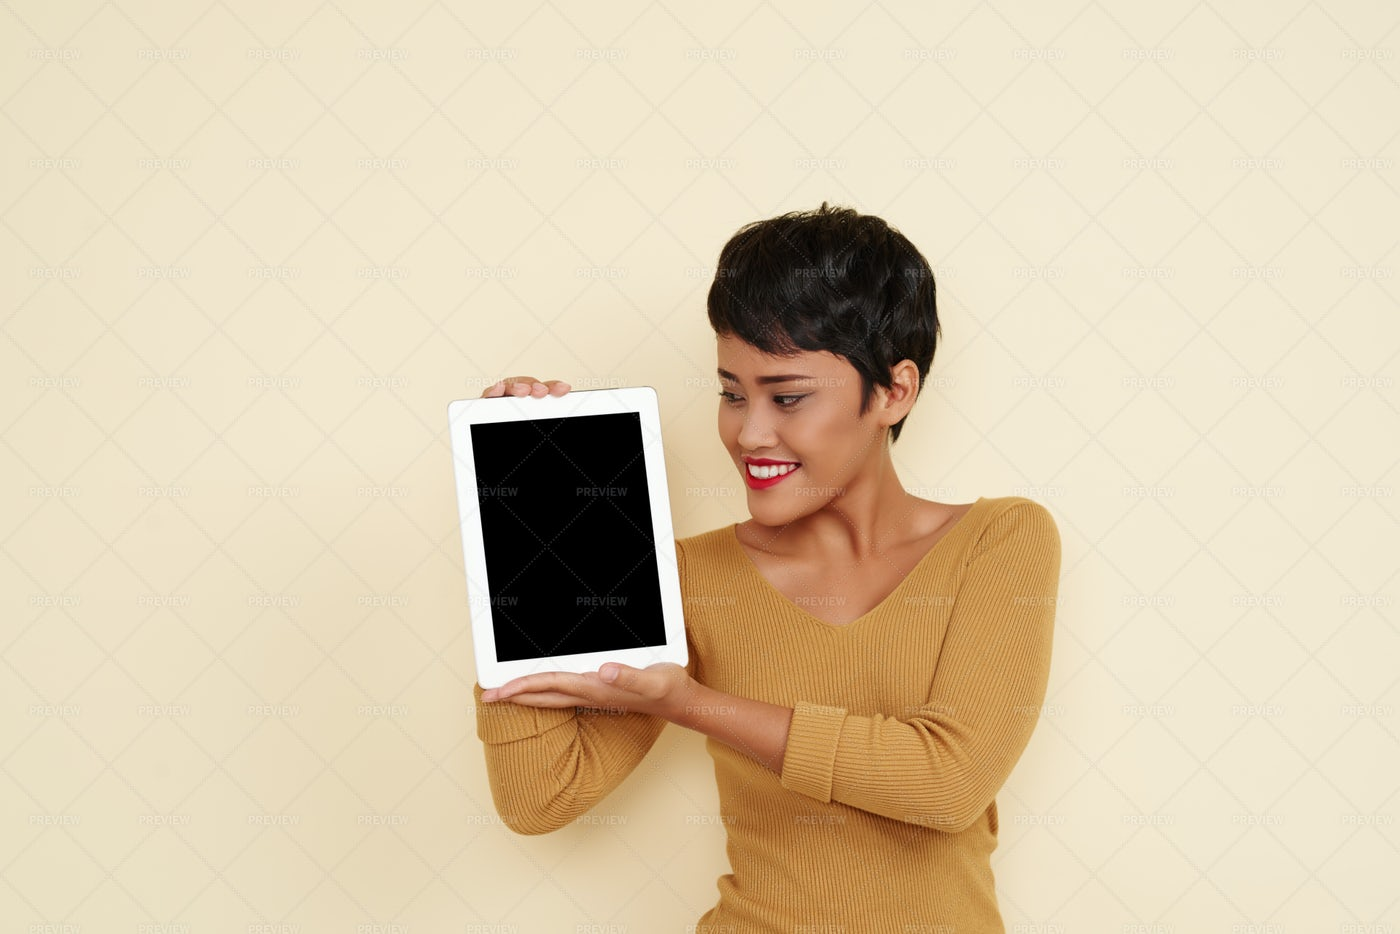 Showing Tablet Computer: Stock Photos